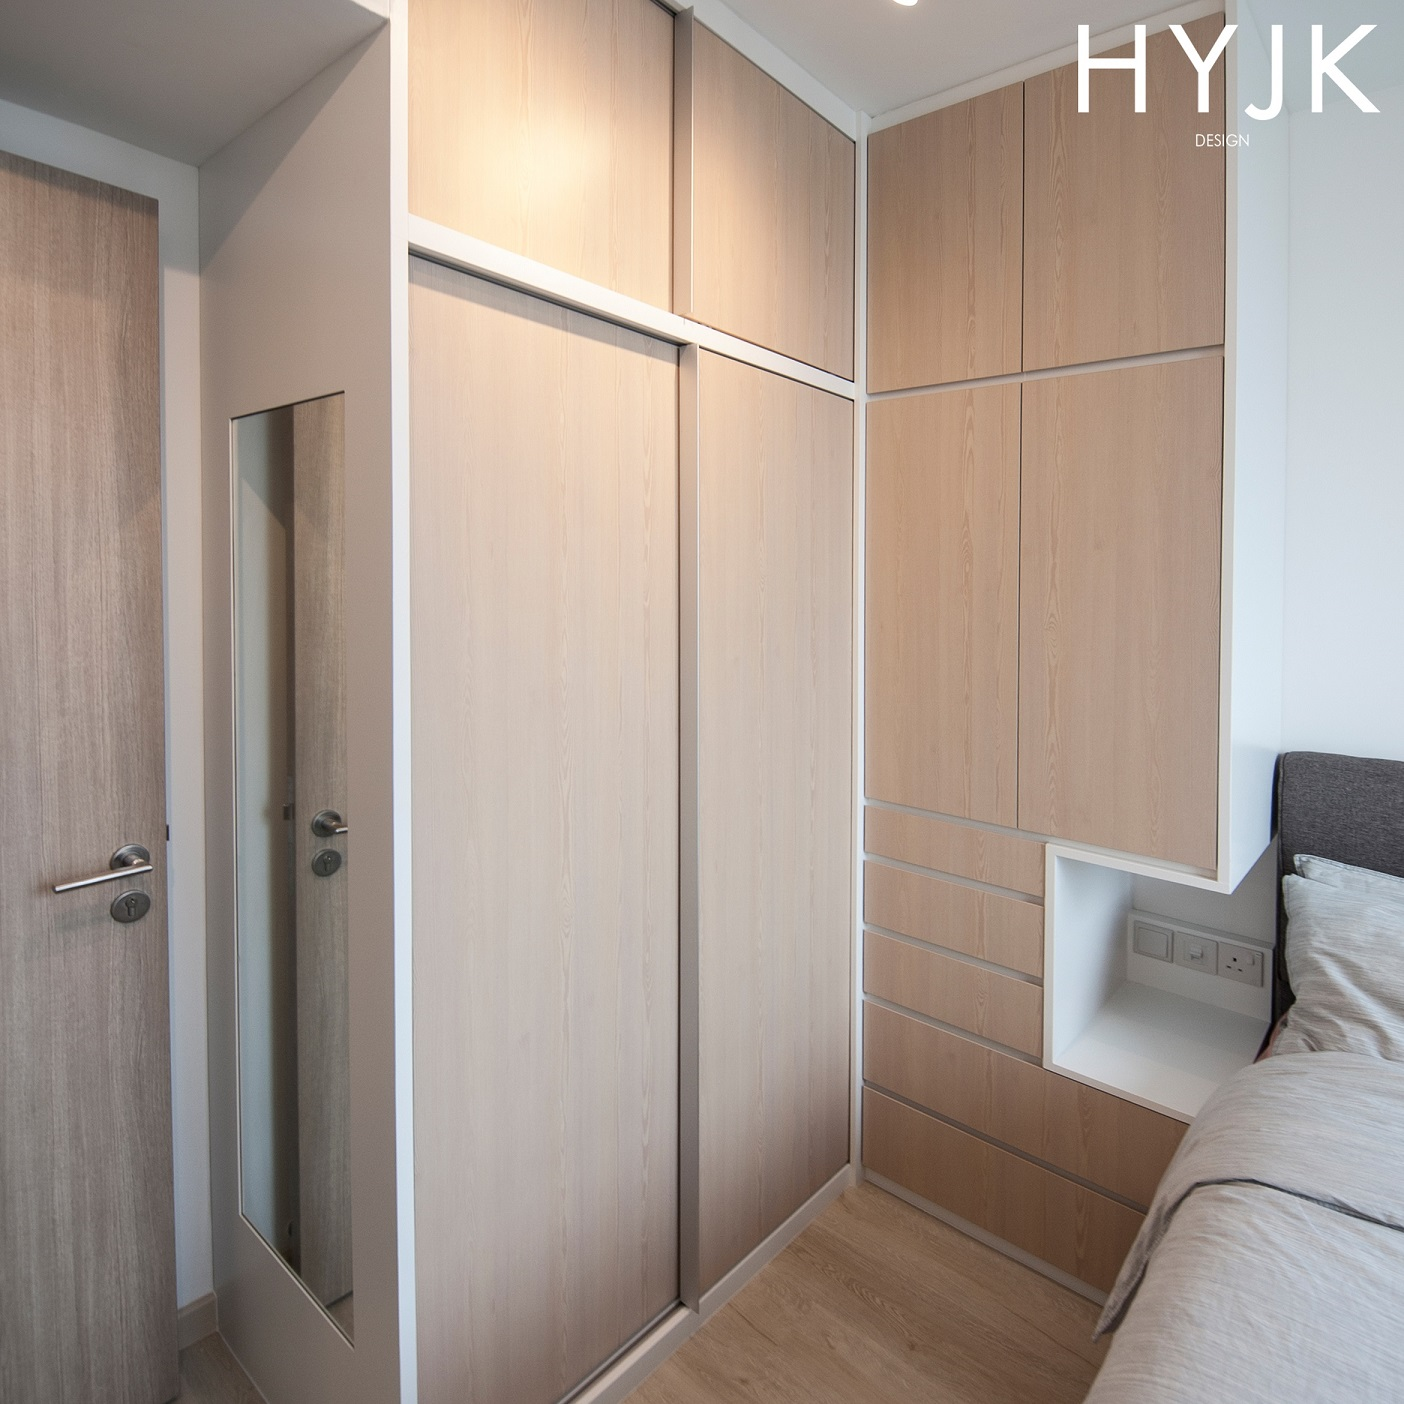 Sliding doors ensure the room remains spacious even when trying out clothes! The mounted mirror at the side of the wardrobe also saves space instead of a standing mirror. (Project Chill Culture)